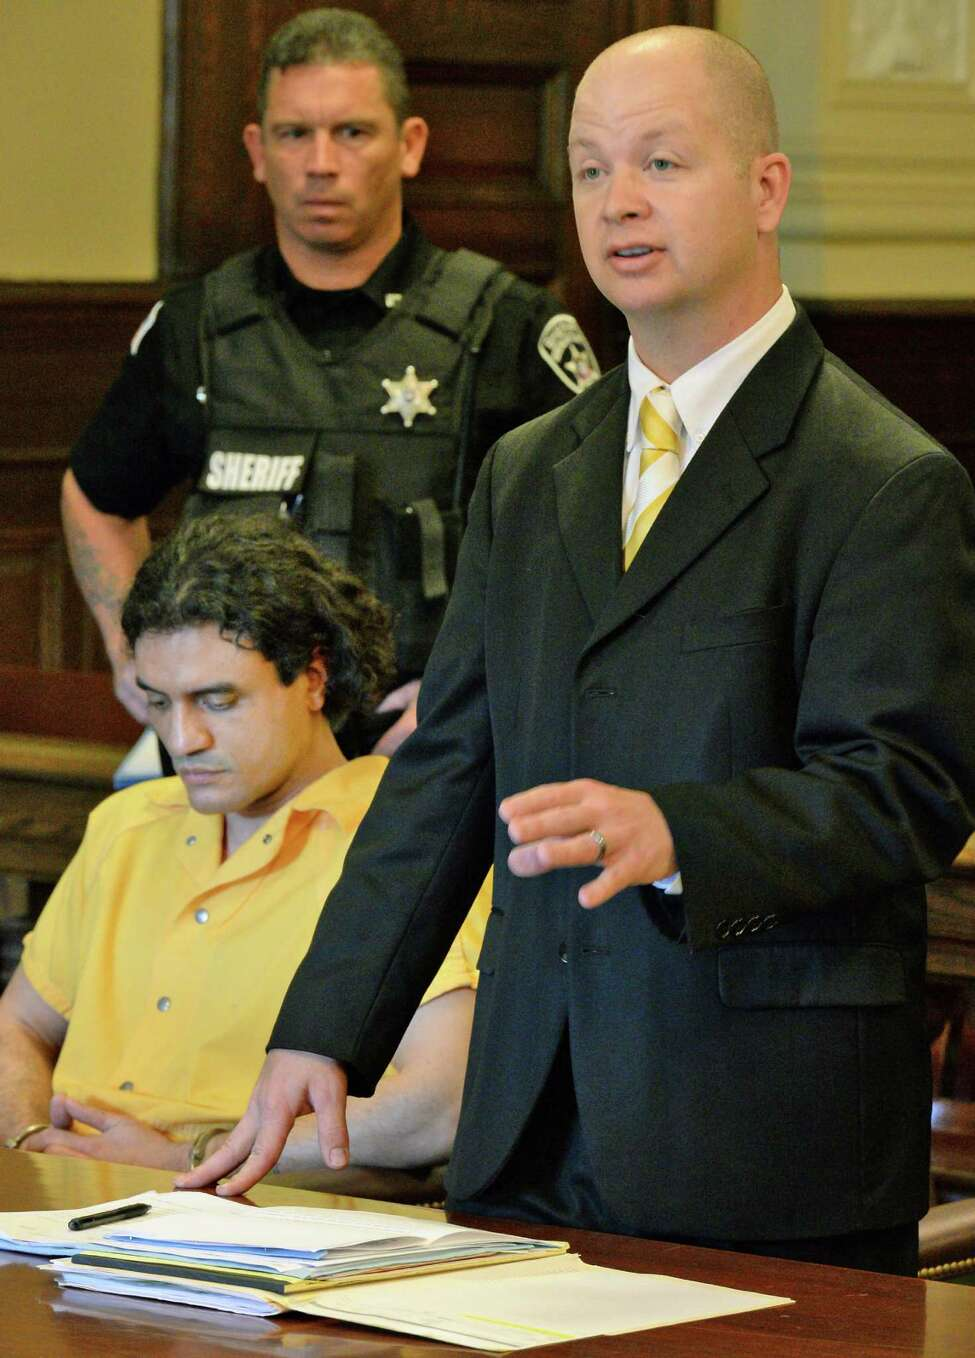 Public defender William Roberts, right, represents Johnny Oquendo, seated, in Rensselaer County Court during an order to show cause hearing for Oquendo's DNA sample as a suspect in the killing of Noel Alkaramla, his step-daughter Friday Aug. 5, 2016 in Troy, NY. (John Carl D'Annibale / Times Union)